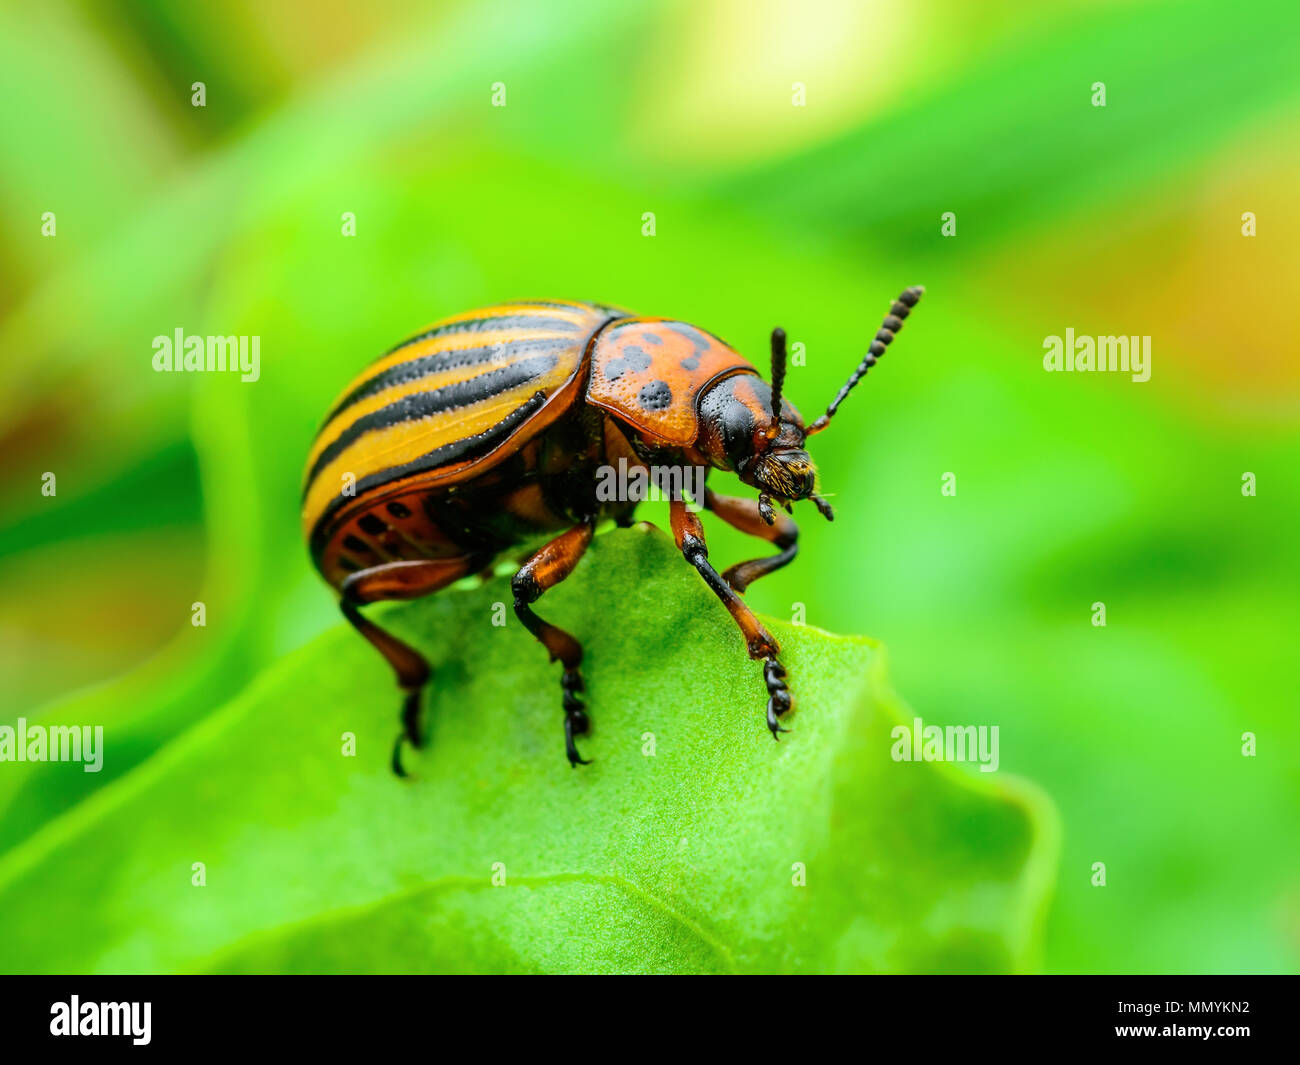 Plant protection immagini & plant protection fotos stock alamy